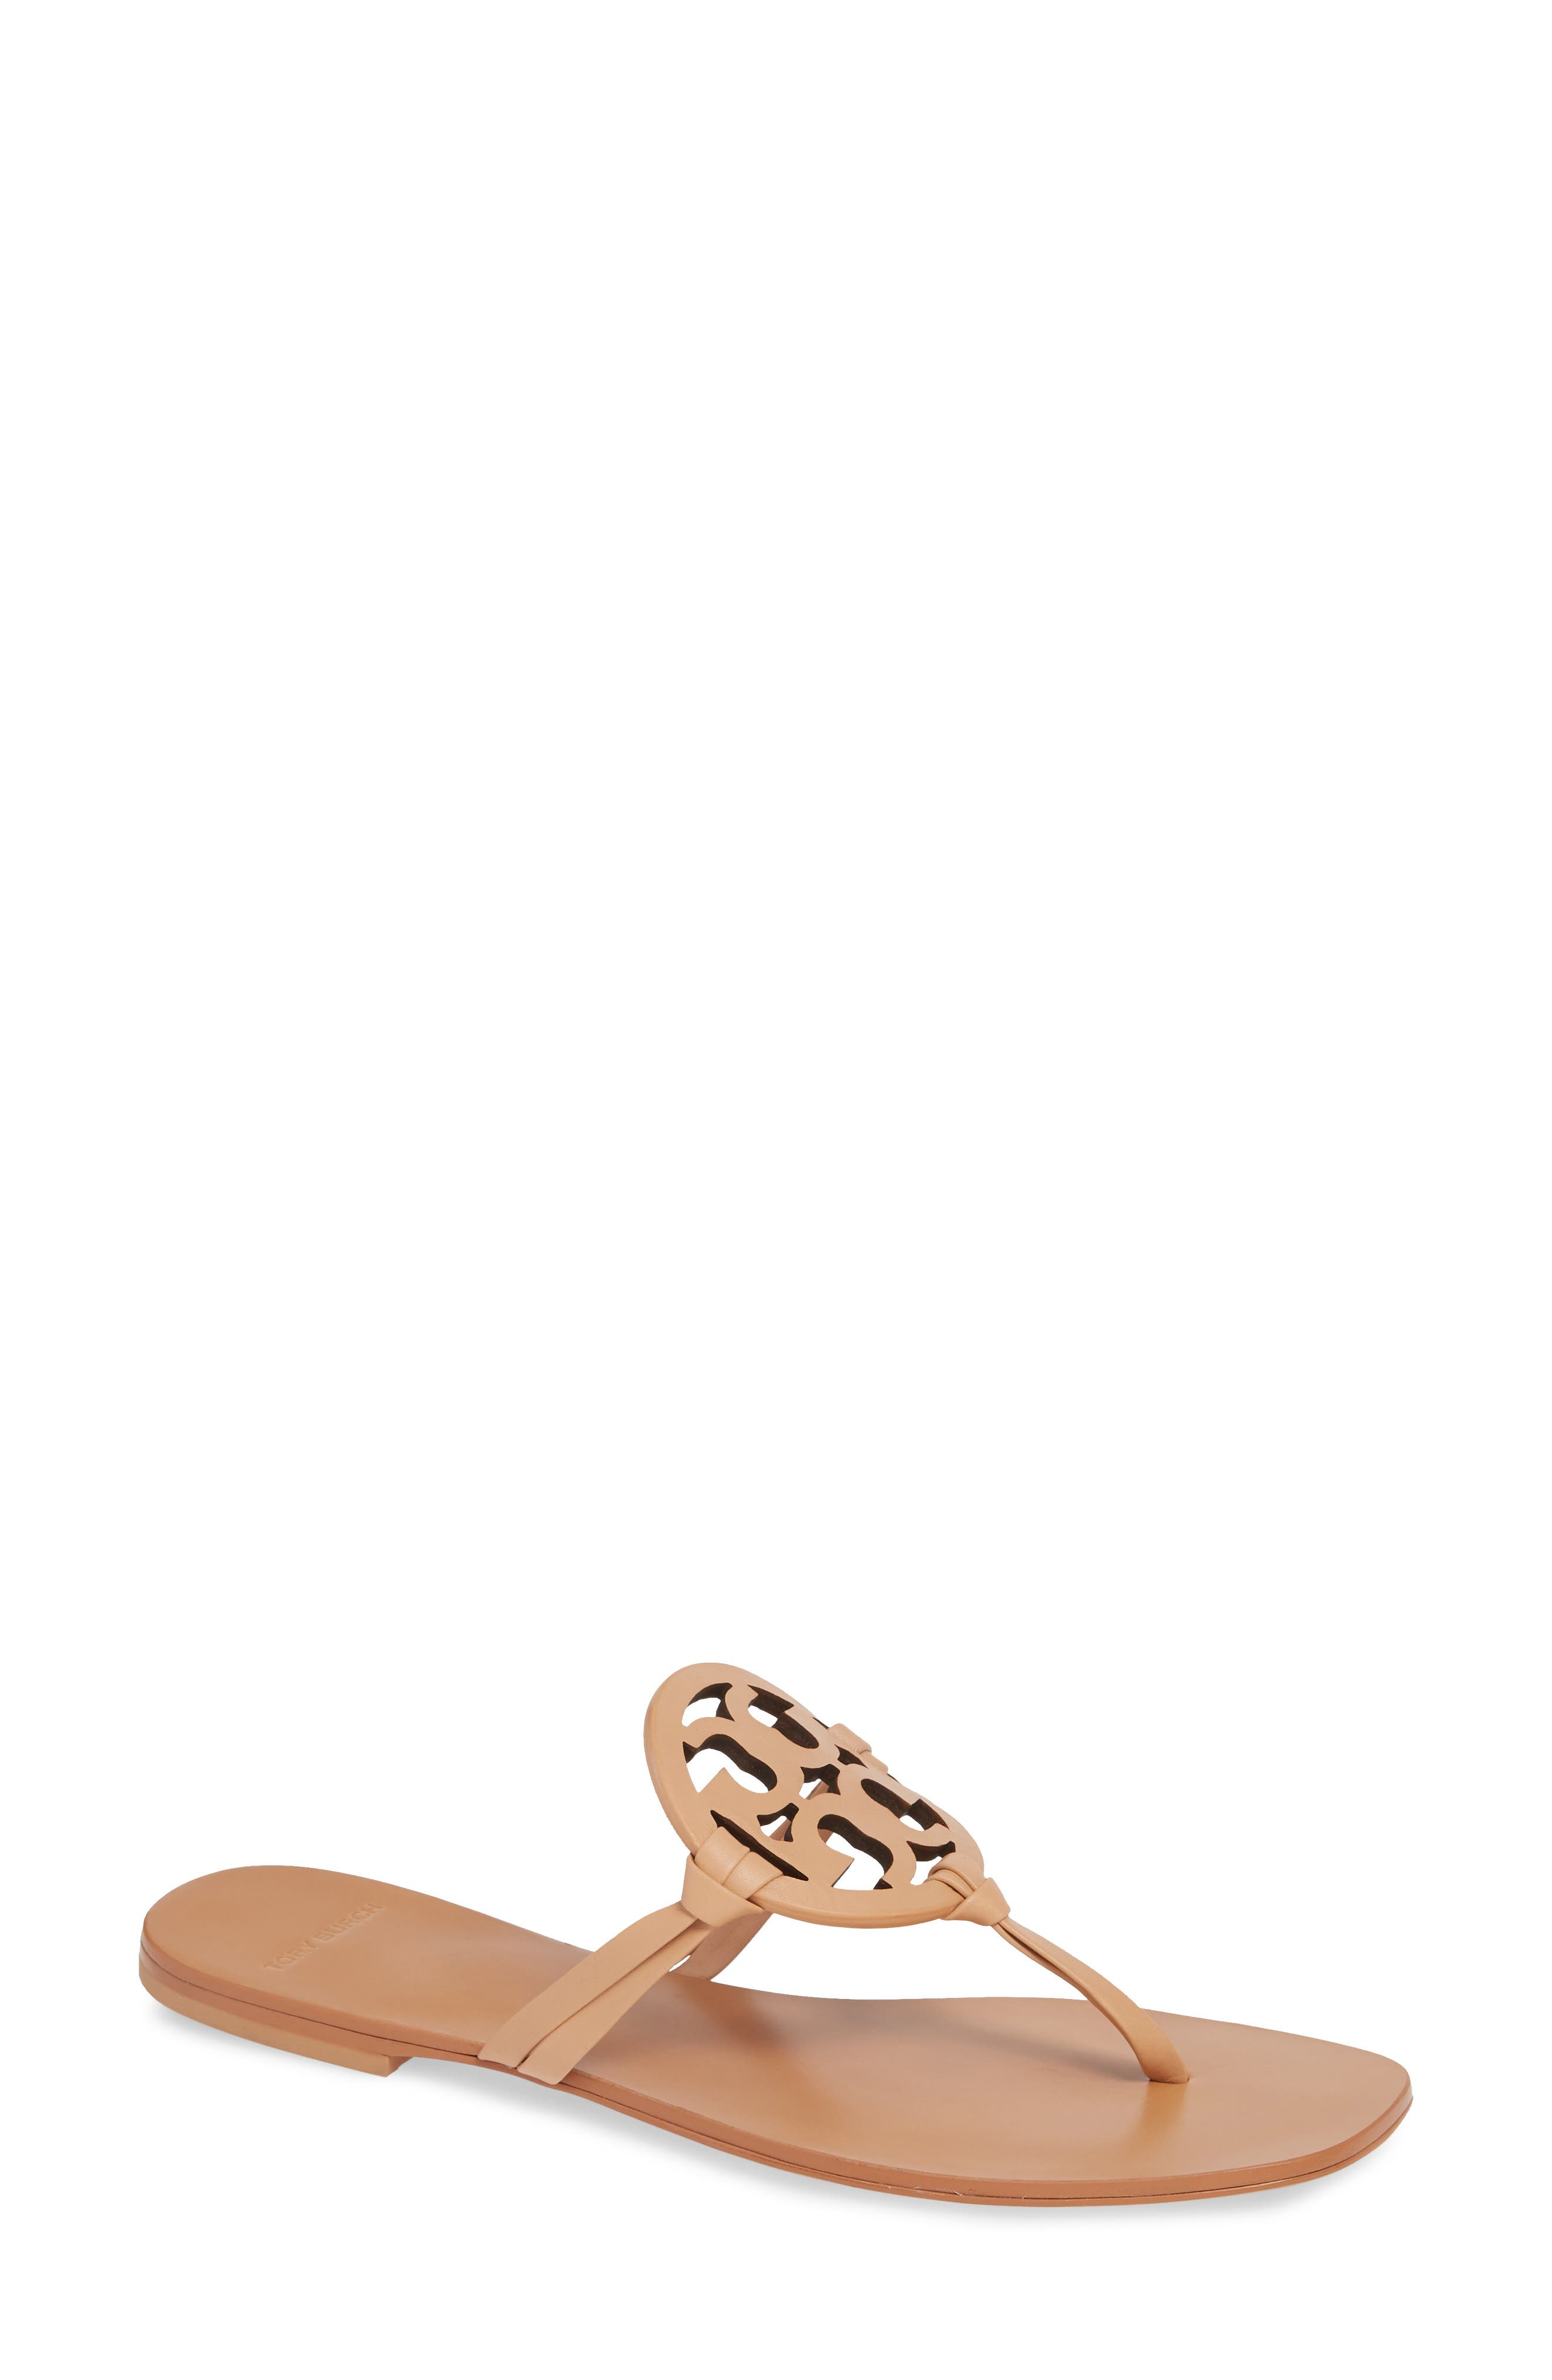 TORY BURCH Miller Square Toe Thong Sandal, Main, color, NATURAL VACHETTA